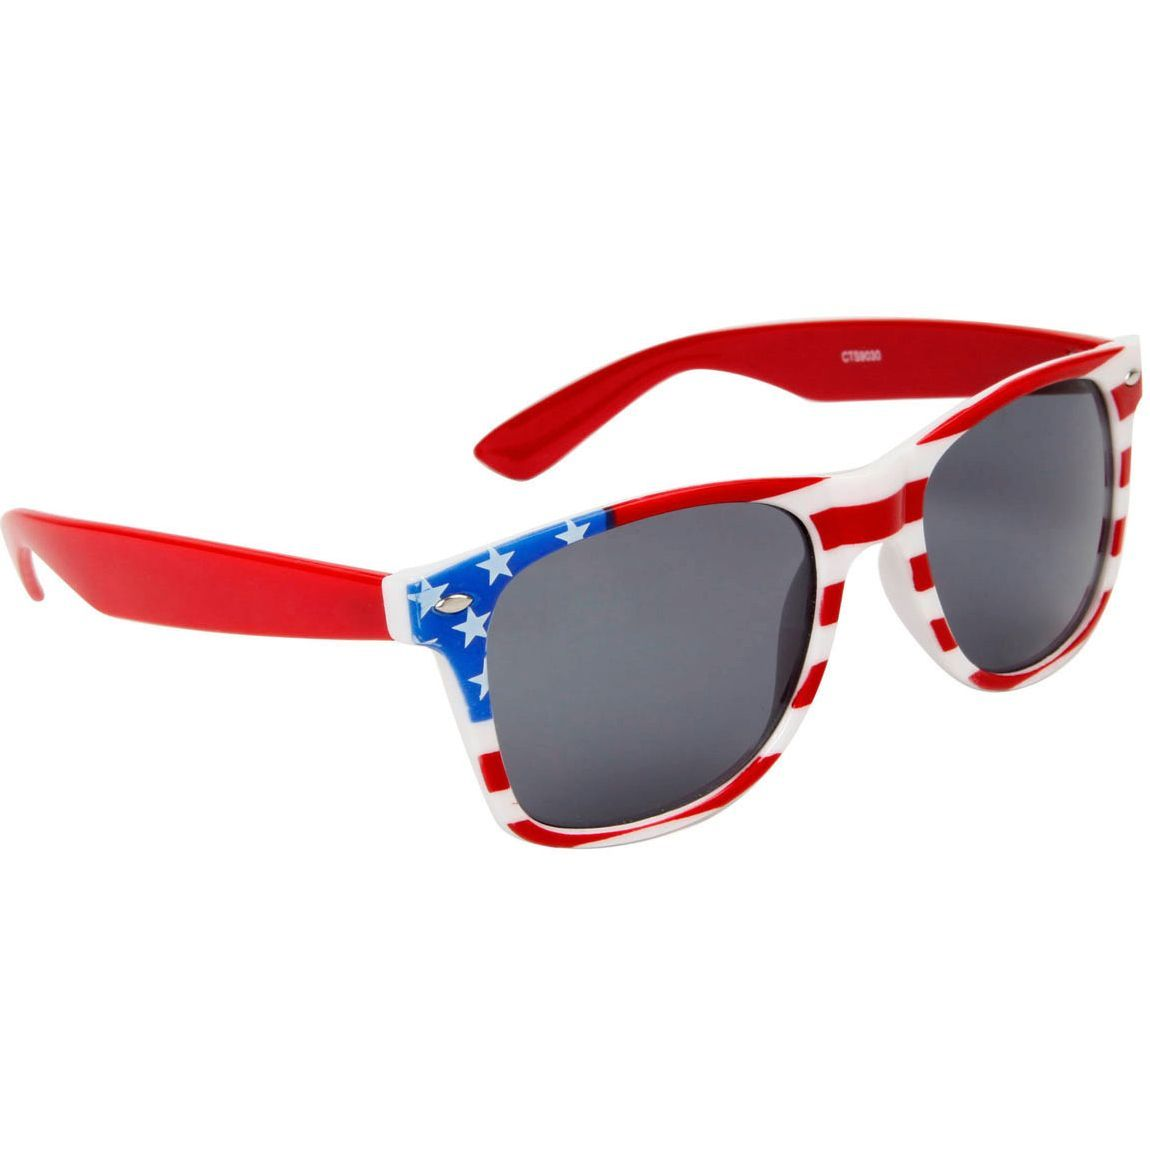 707cc5804d3 American Flag Sunglasses with Red Arms